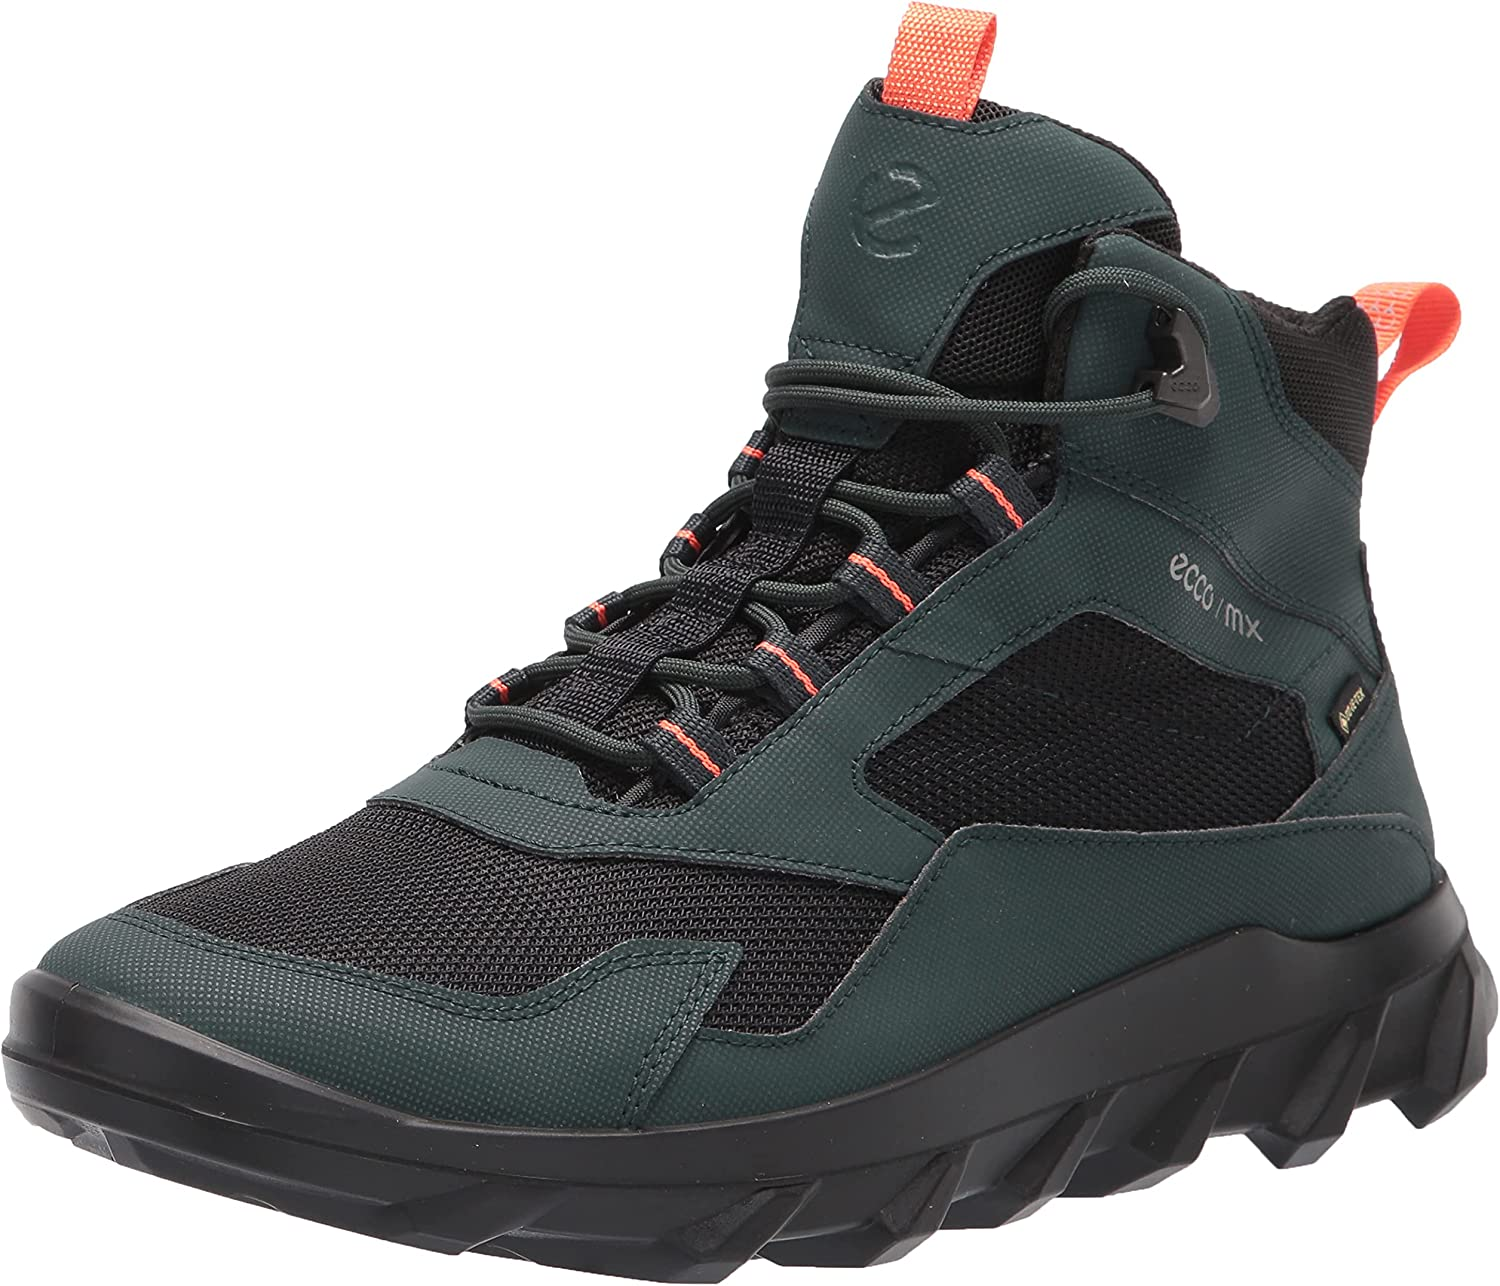 ECCO Men's Mx Mid Boot Ankle 25% OFF Limited time for free shipping Gore-tex